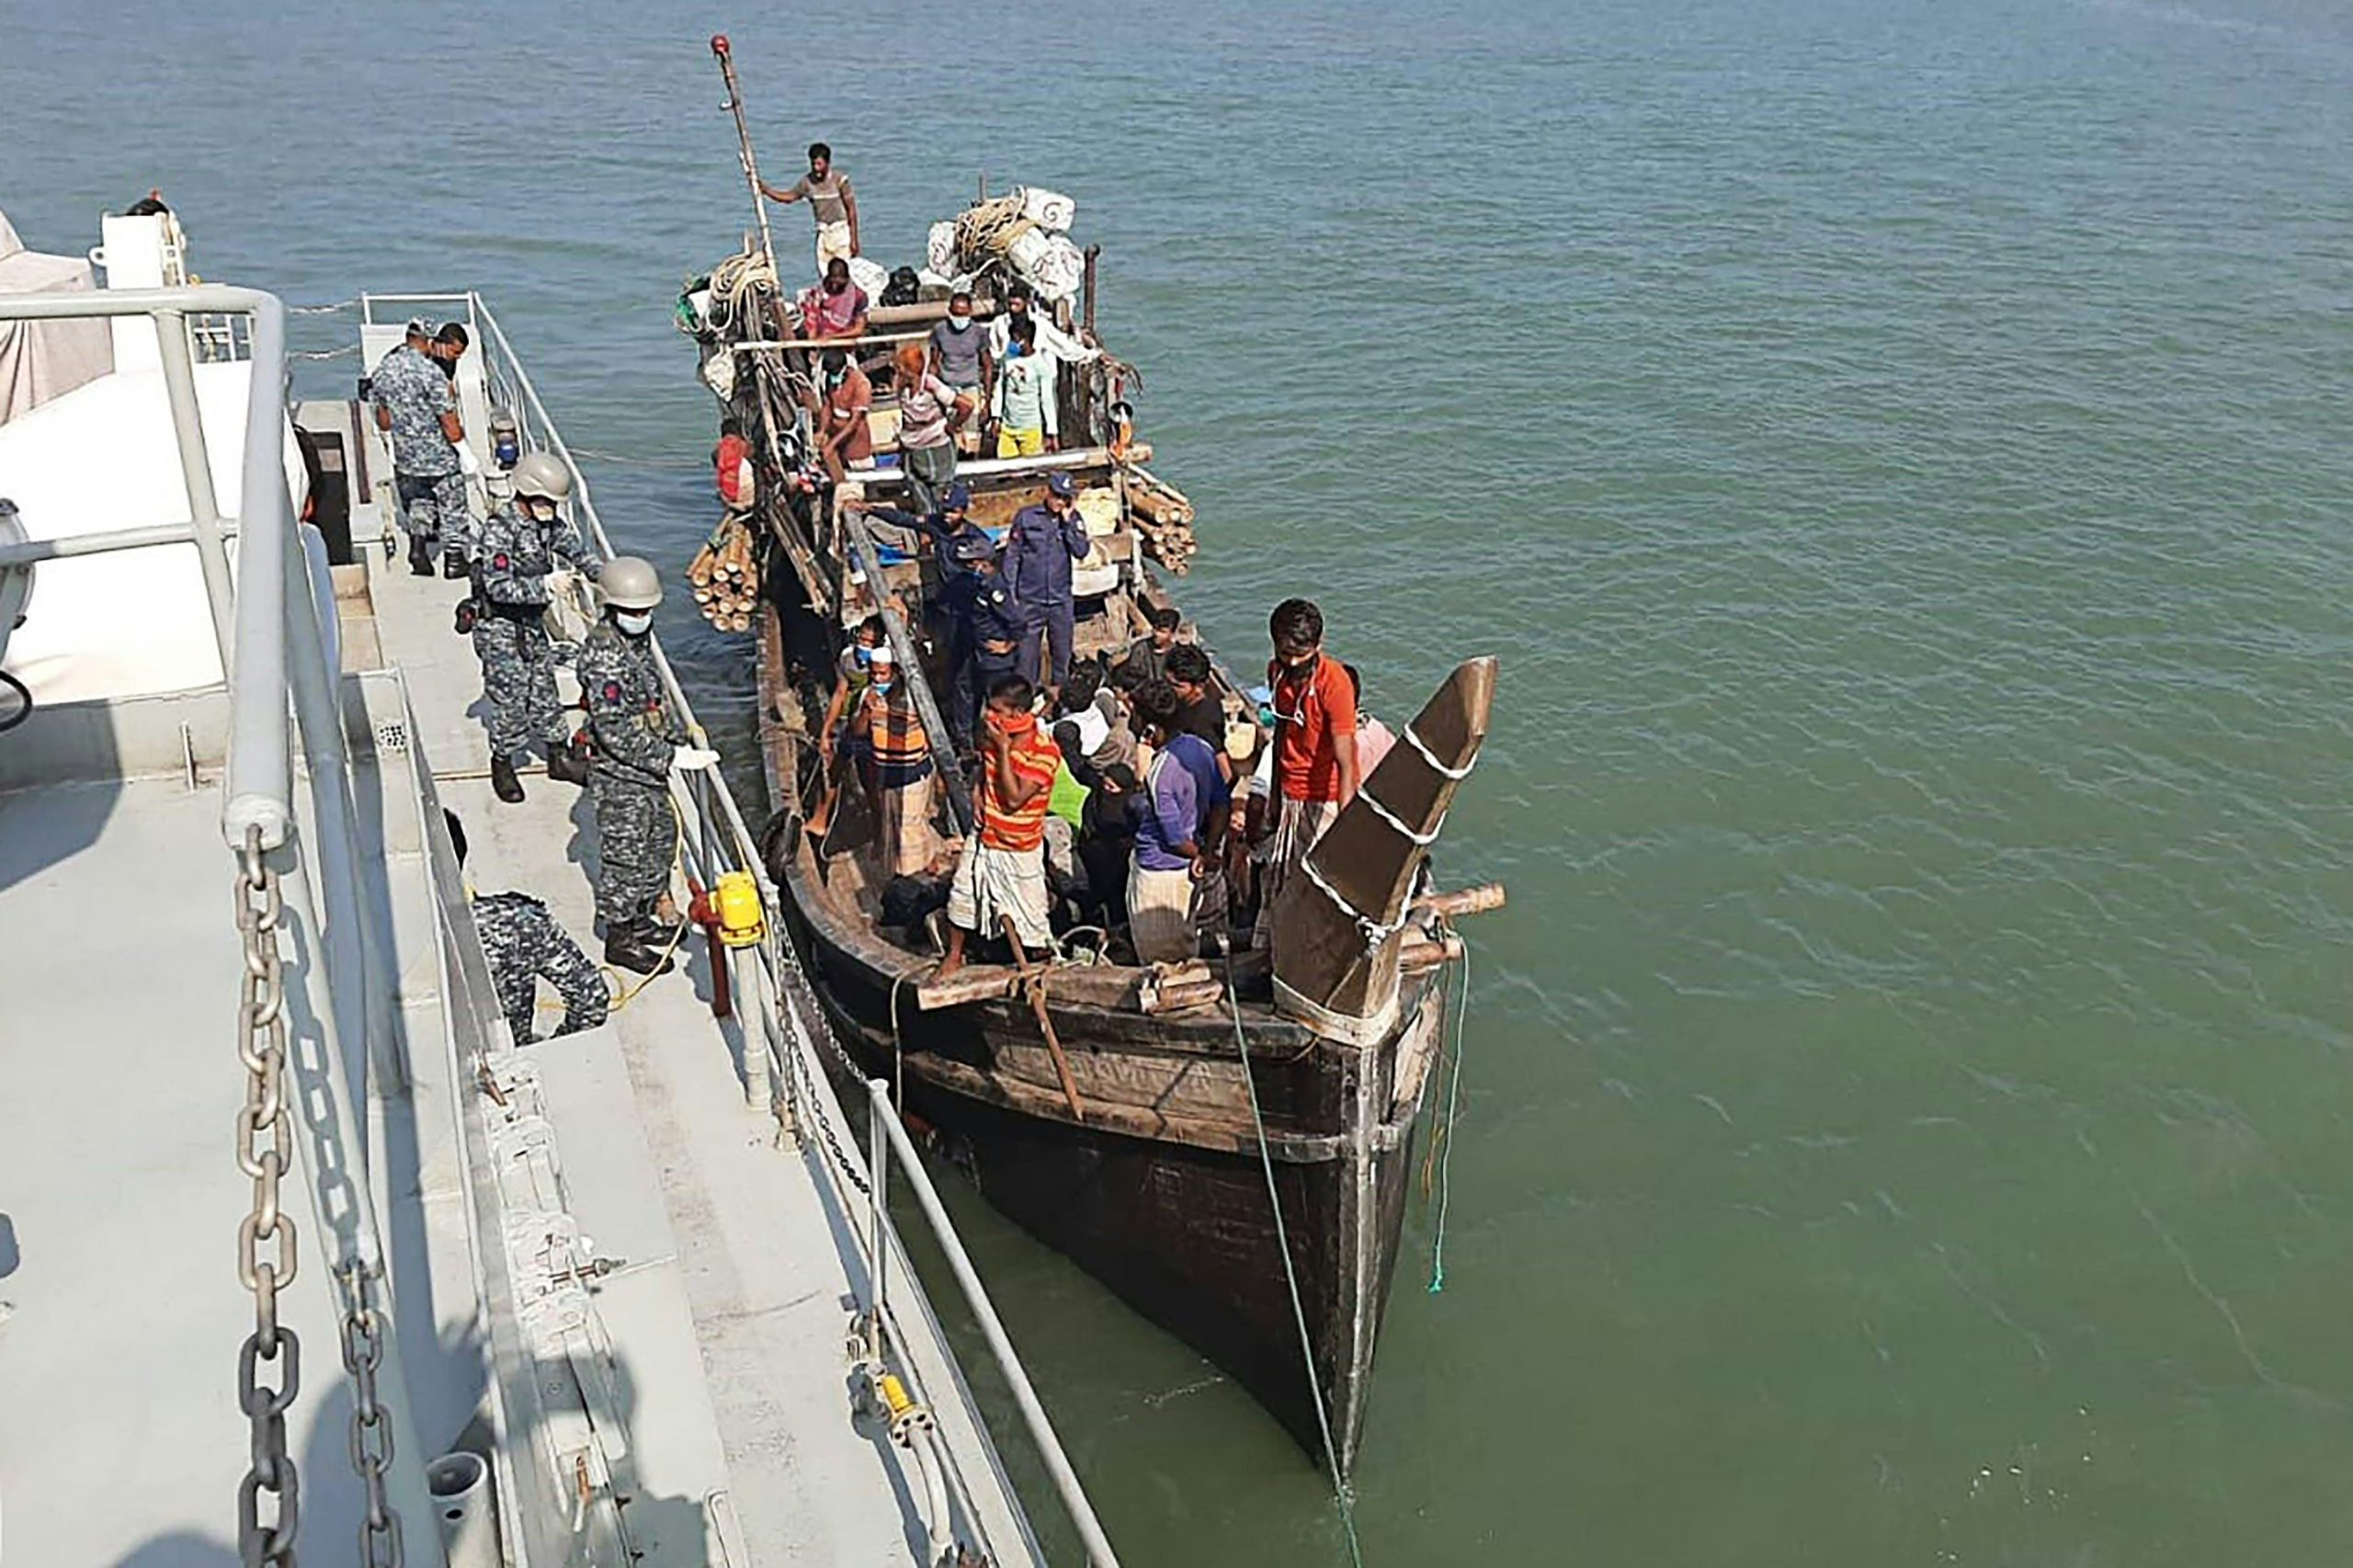 In this picture taken on May 2, 2020, Rohingya refugees stranded at sea are seen on a boat near the coast of Cox's Bazar. - Dozens of Rohingya refugees believed to have come from two boats stranded at sea for weeks as they tried to reach Malaysia landed on the Bangladesh coast on May 2, Rohingya community leaders said. (Photo by STR / AFP)